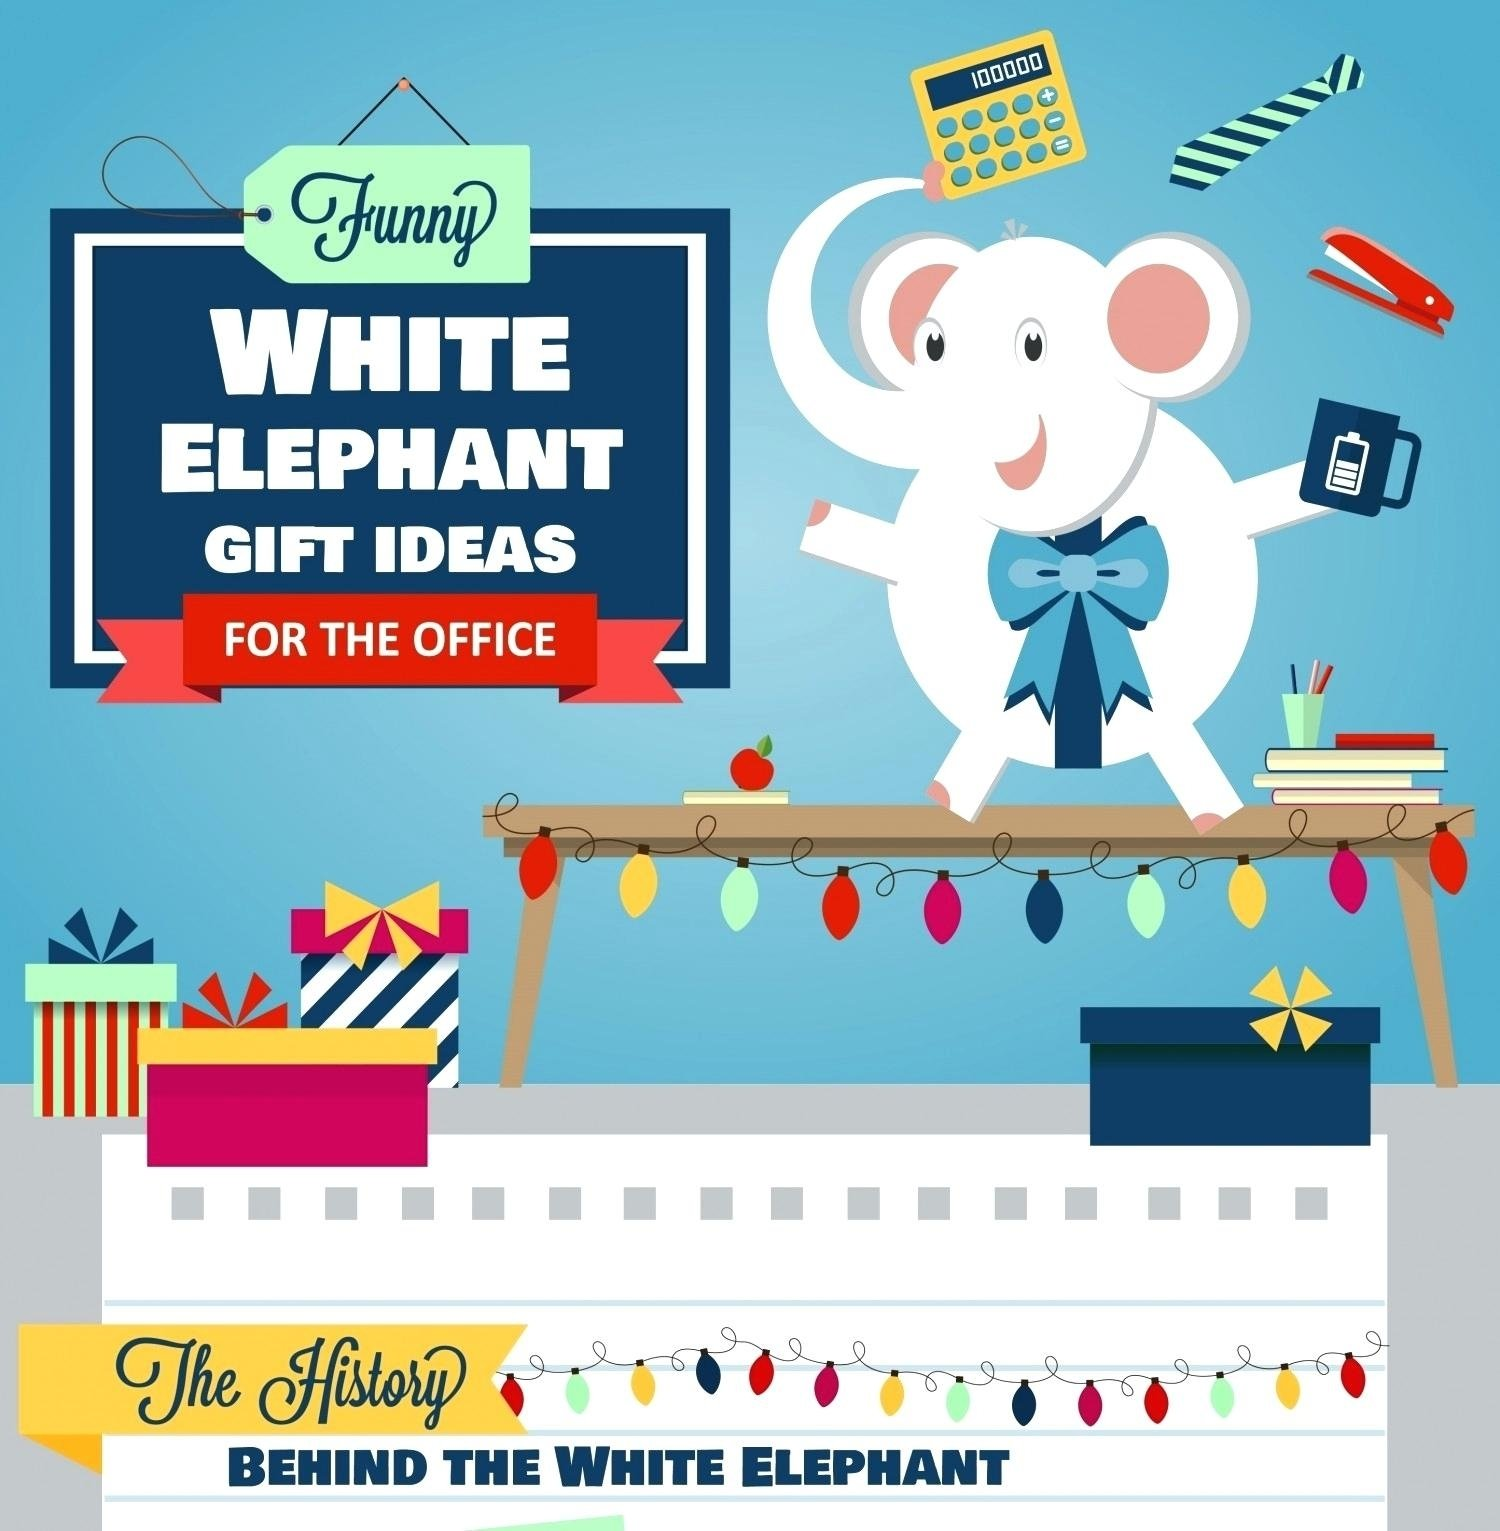 10 Stylish Great White Elephant Gift Ideas excellent office ideas office christmas party white elephant gift 2020